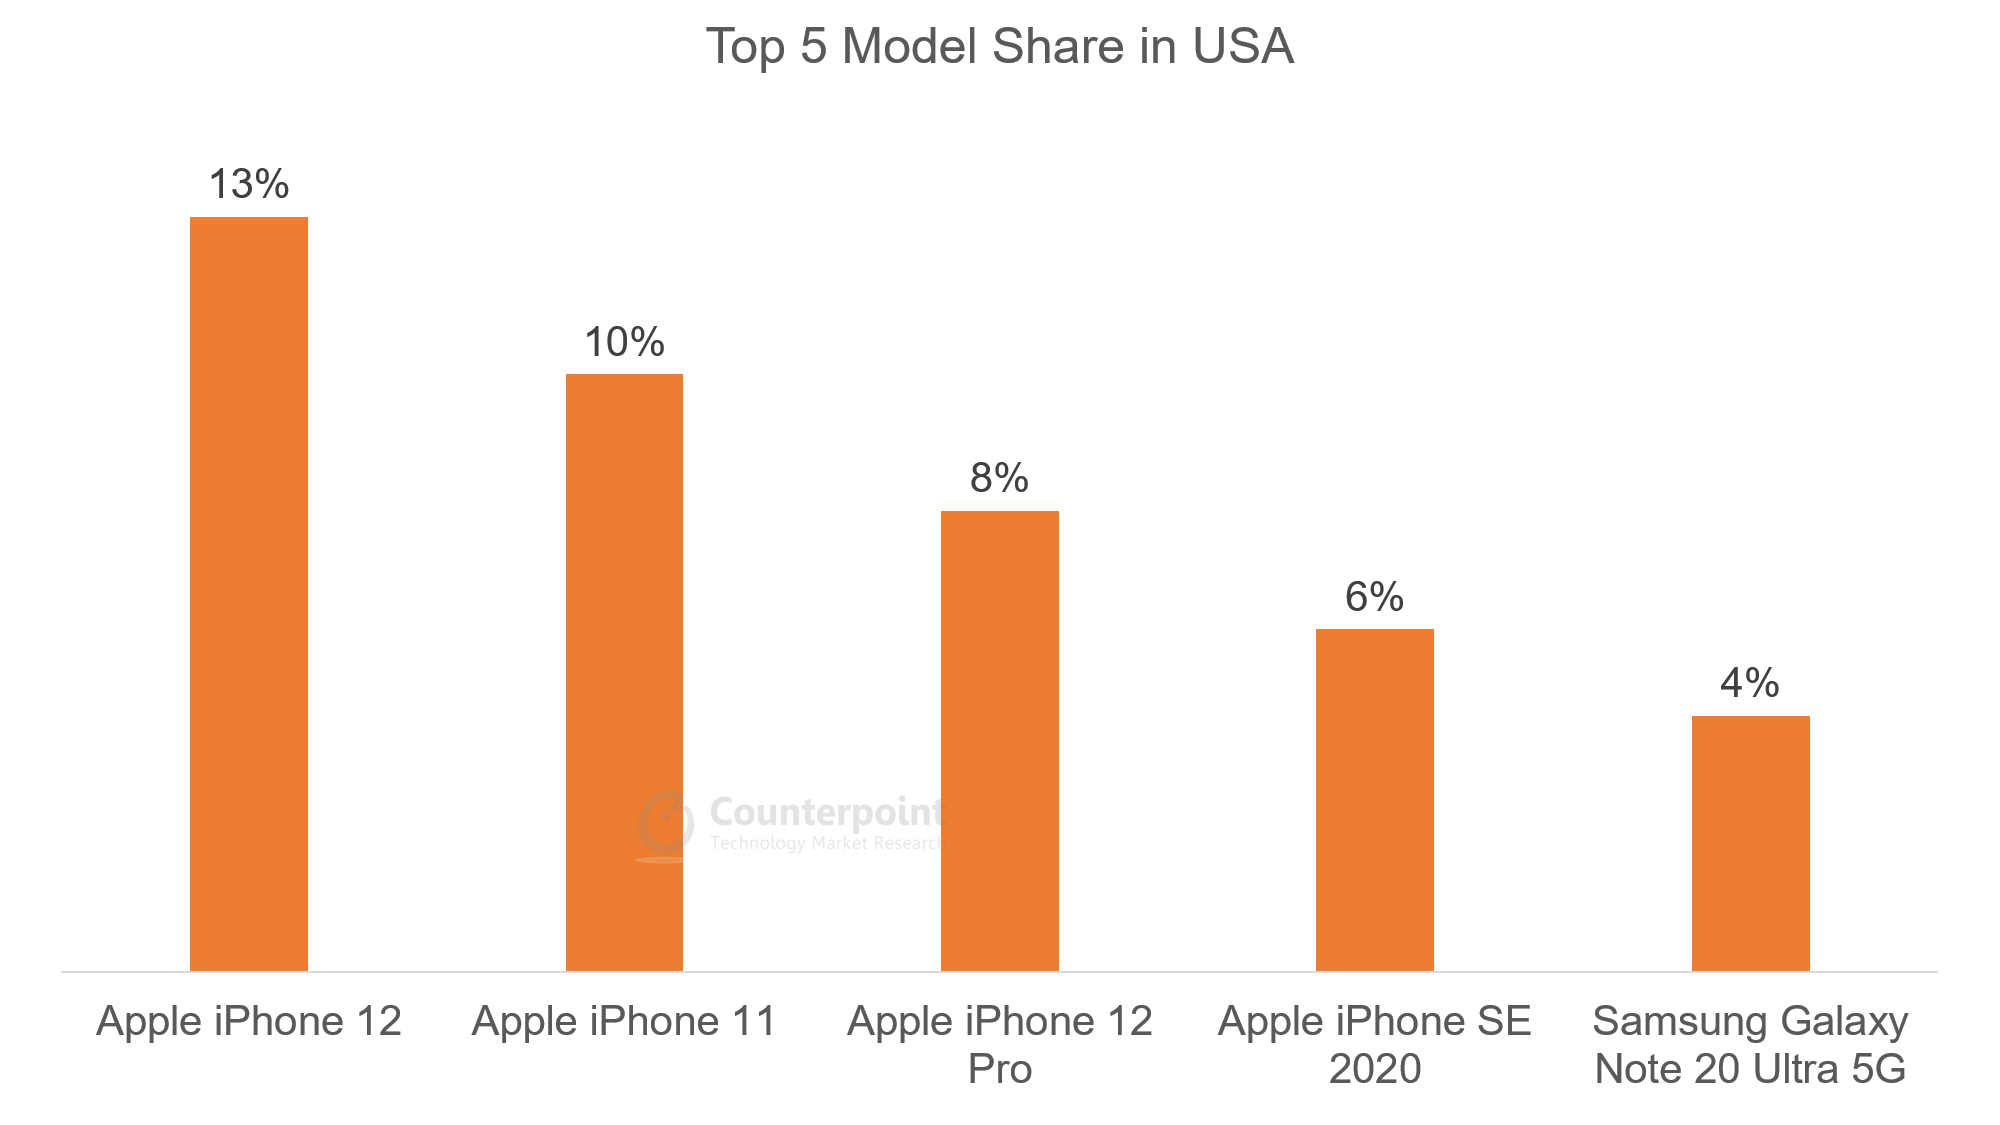 Top 5 Model Share in USA - Oct 2020